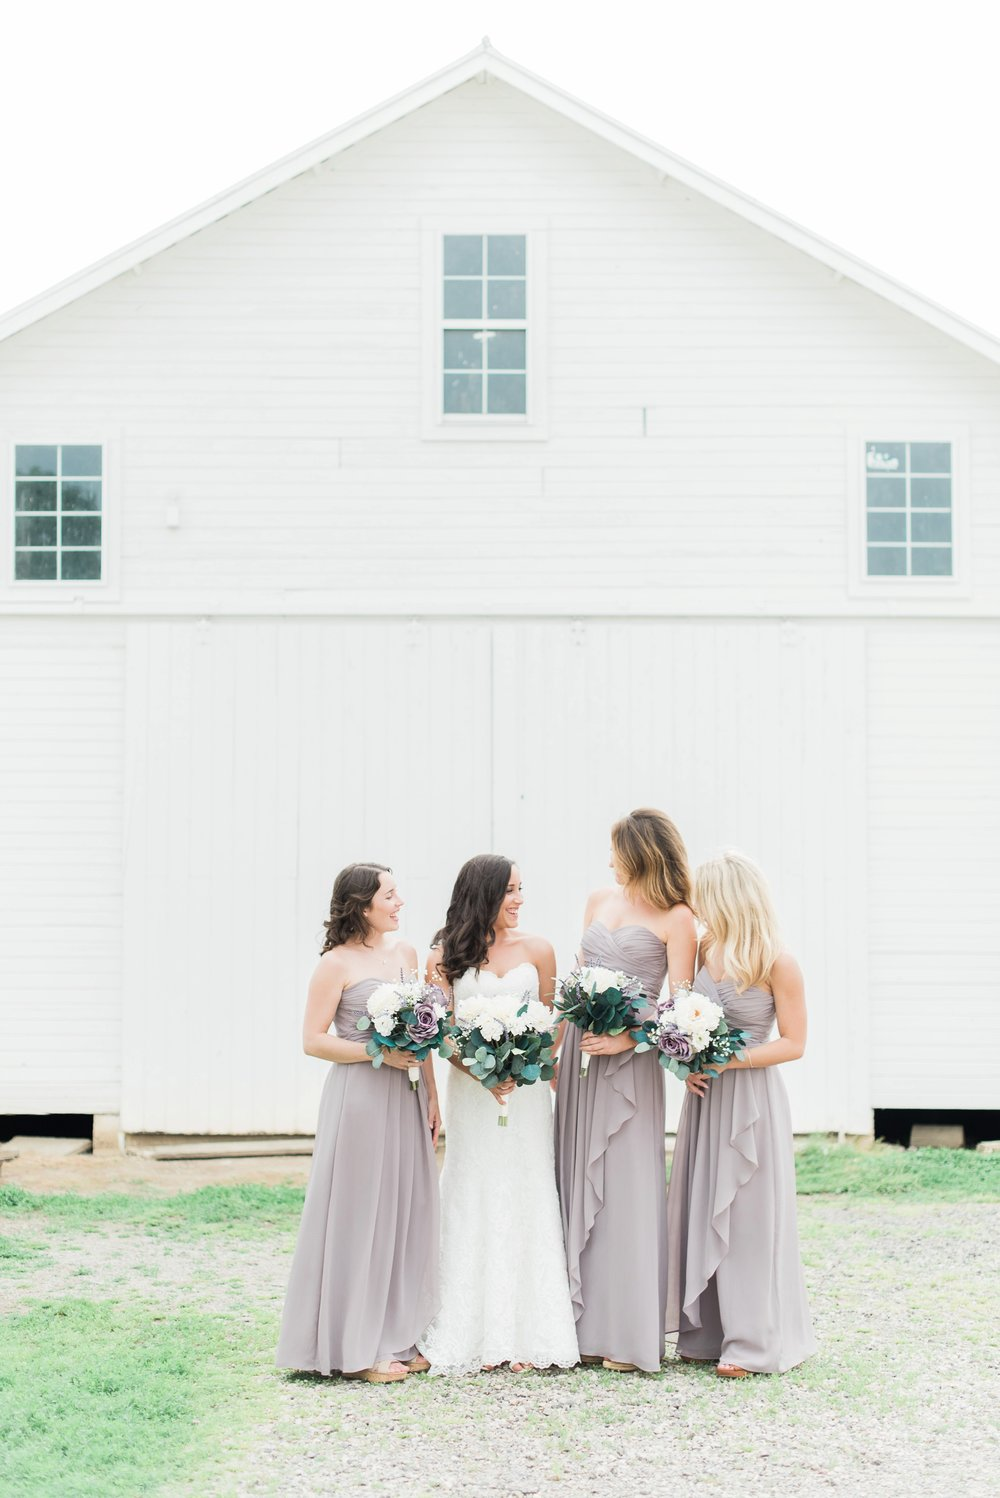 niederman-farm-wedding-cincinnati-ohio-photographer_0070.jpg